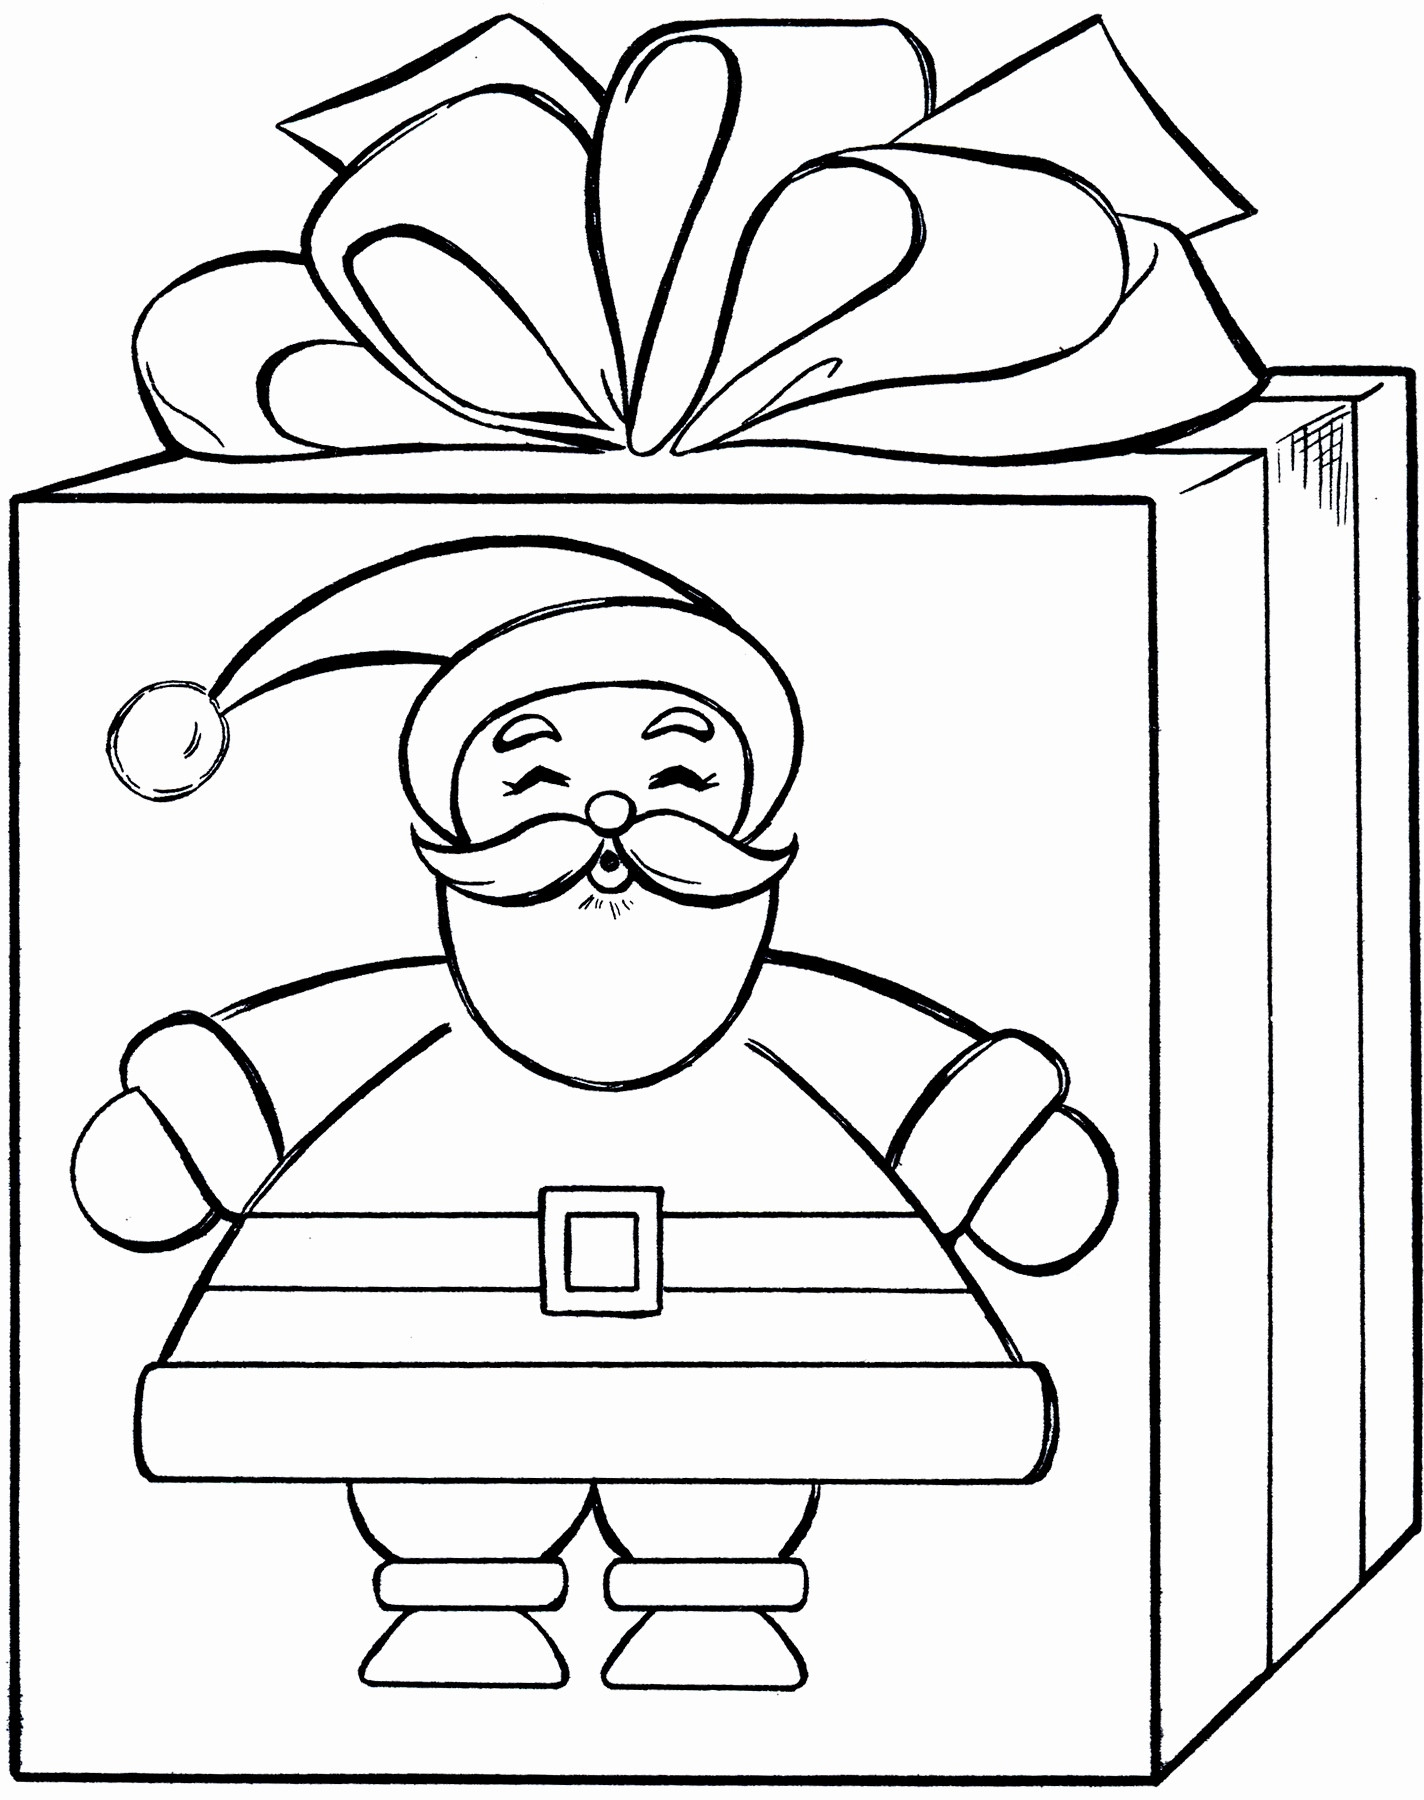 Christmas Elf Coloring Pages Christmas Elf Coloring Pages Awesome Present Page 3 7478 Of Within